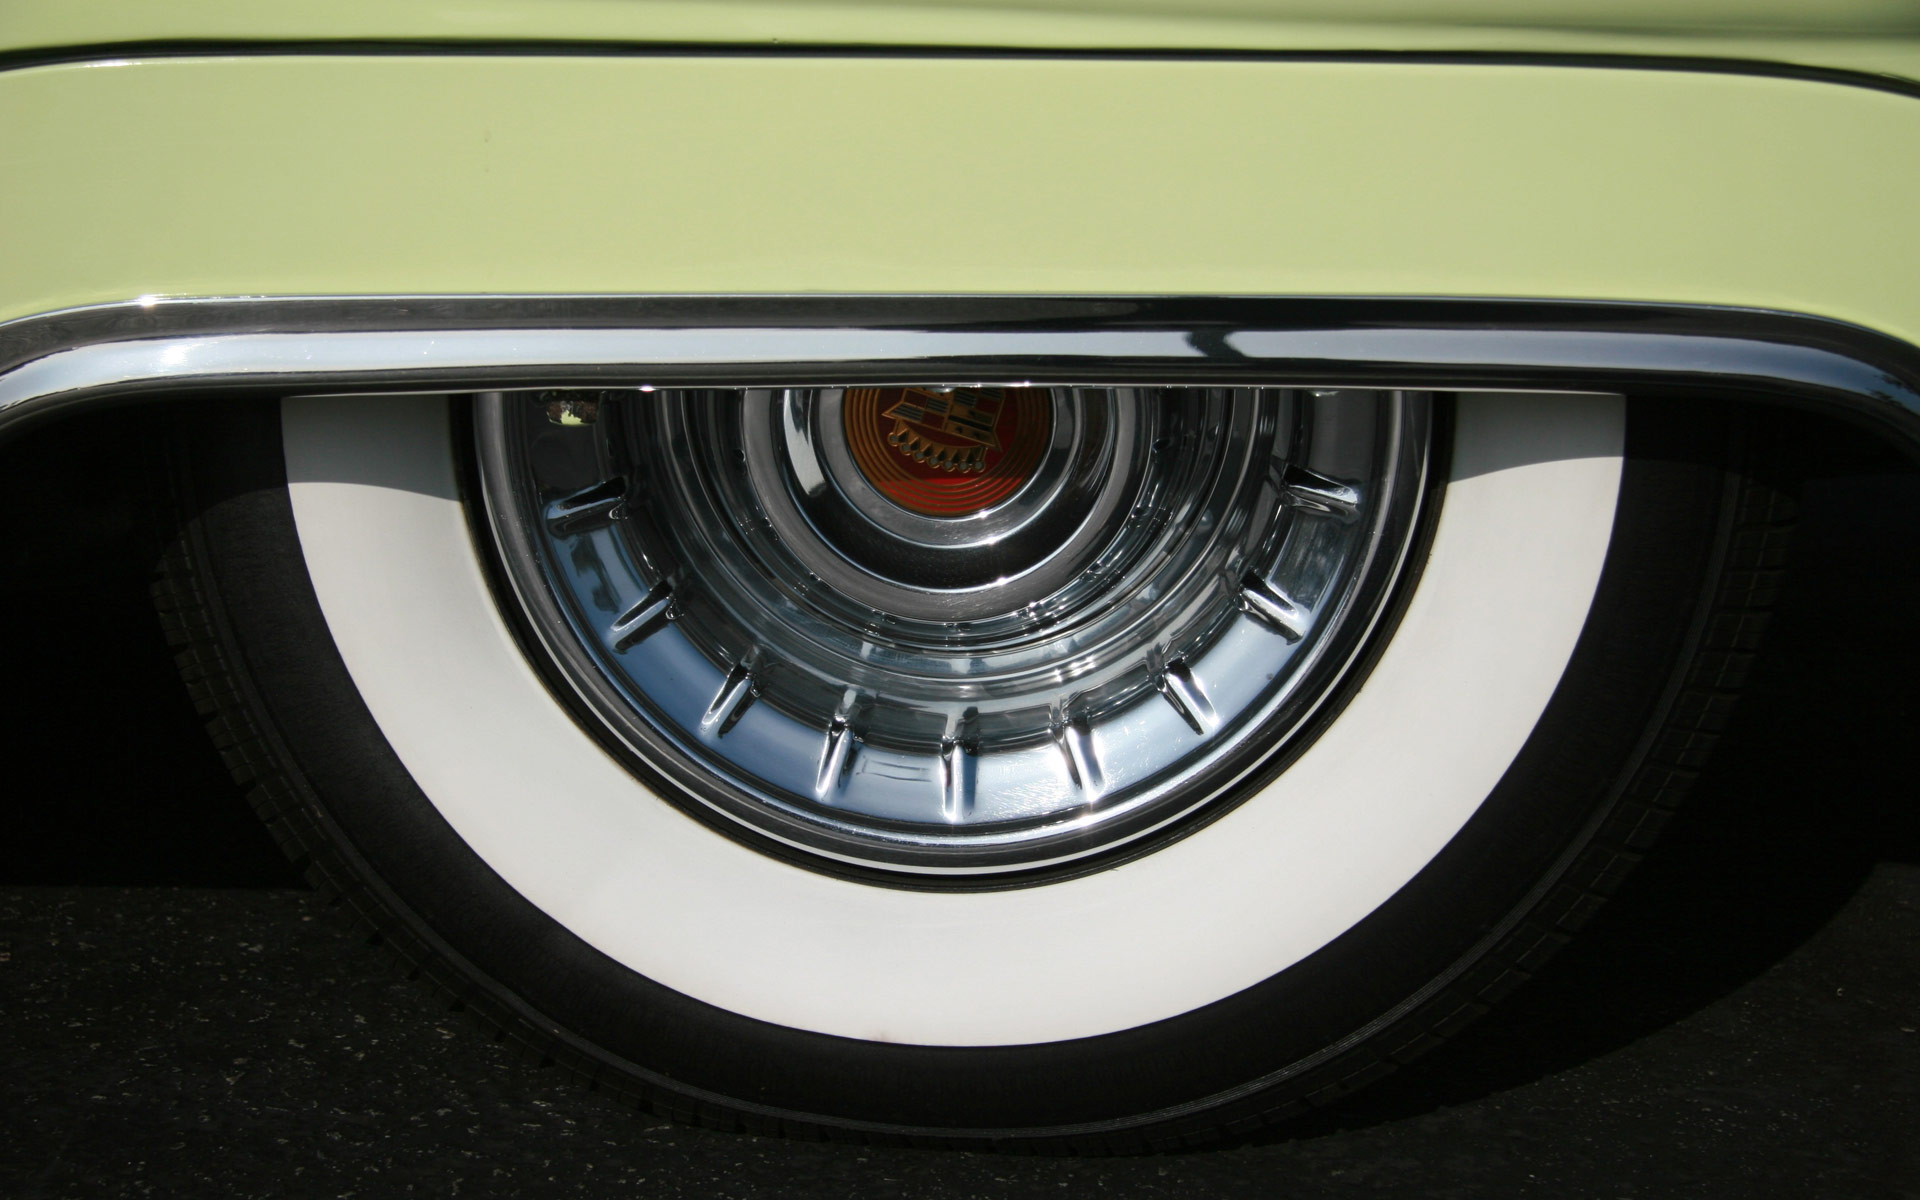 Standout-Image-Retro-car-wheel